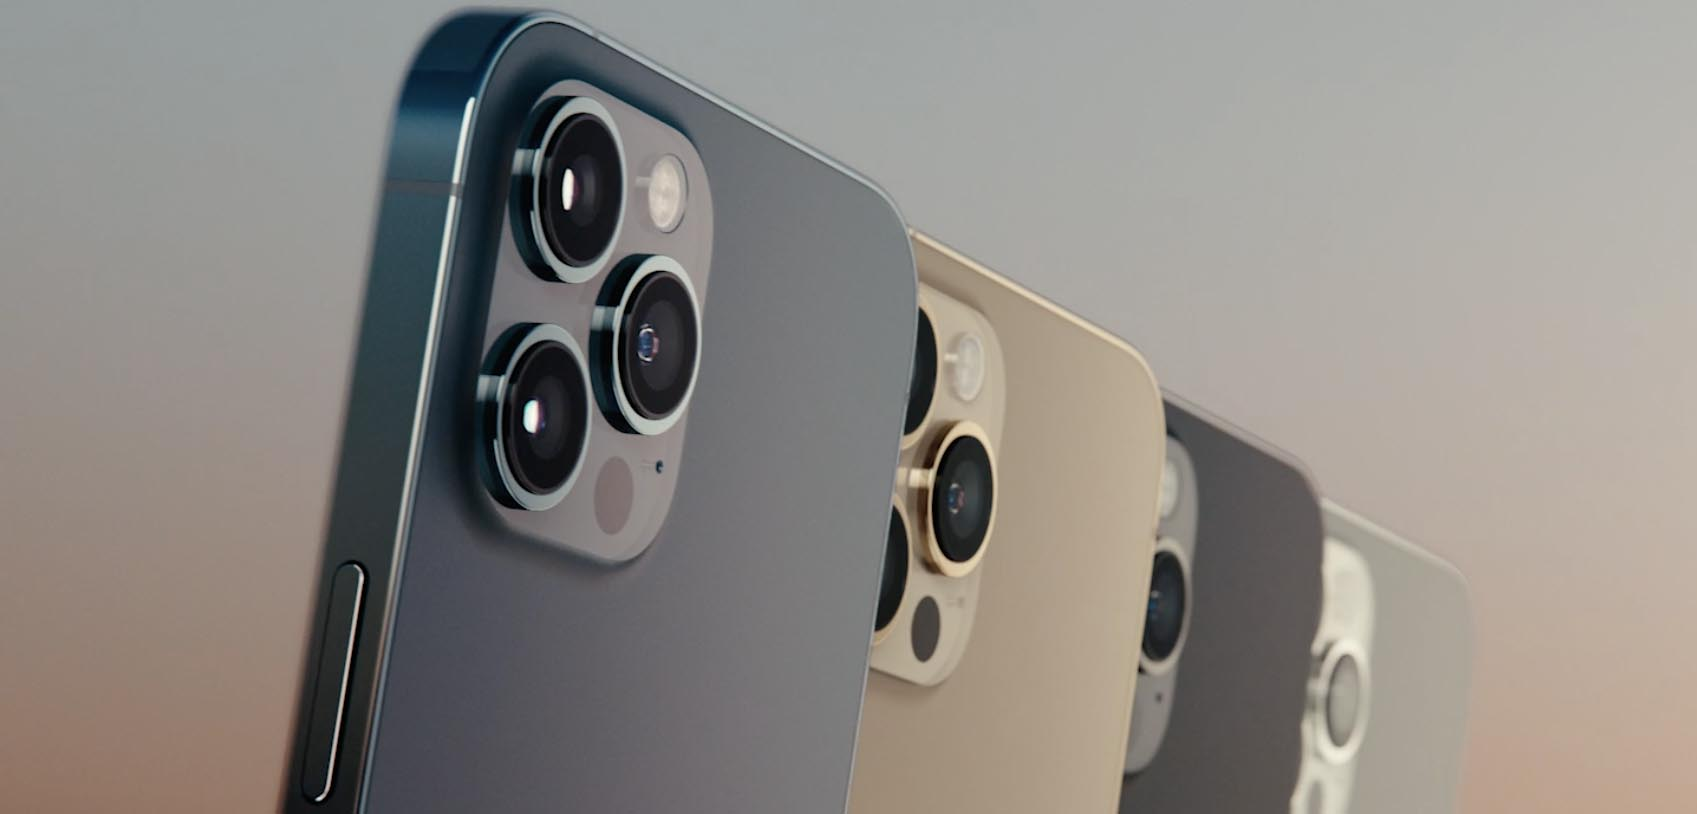 iPhone 12 Pro Max line-up